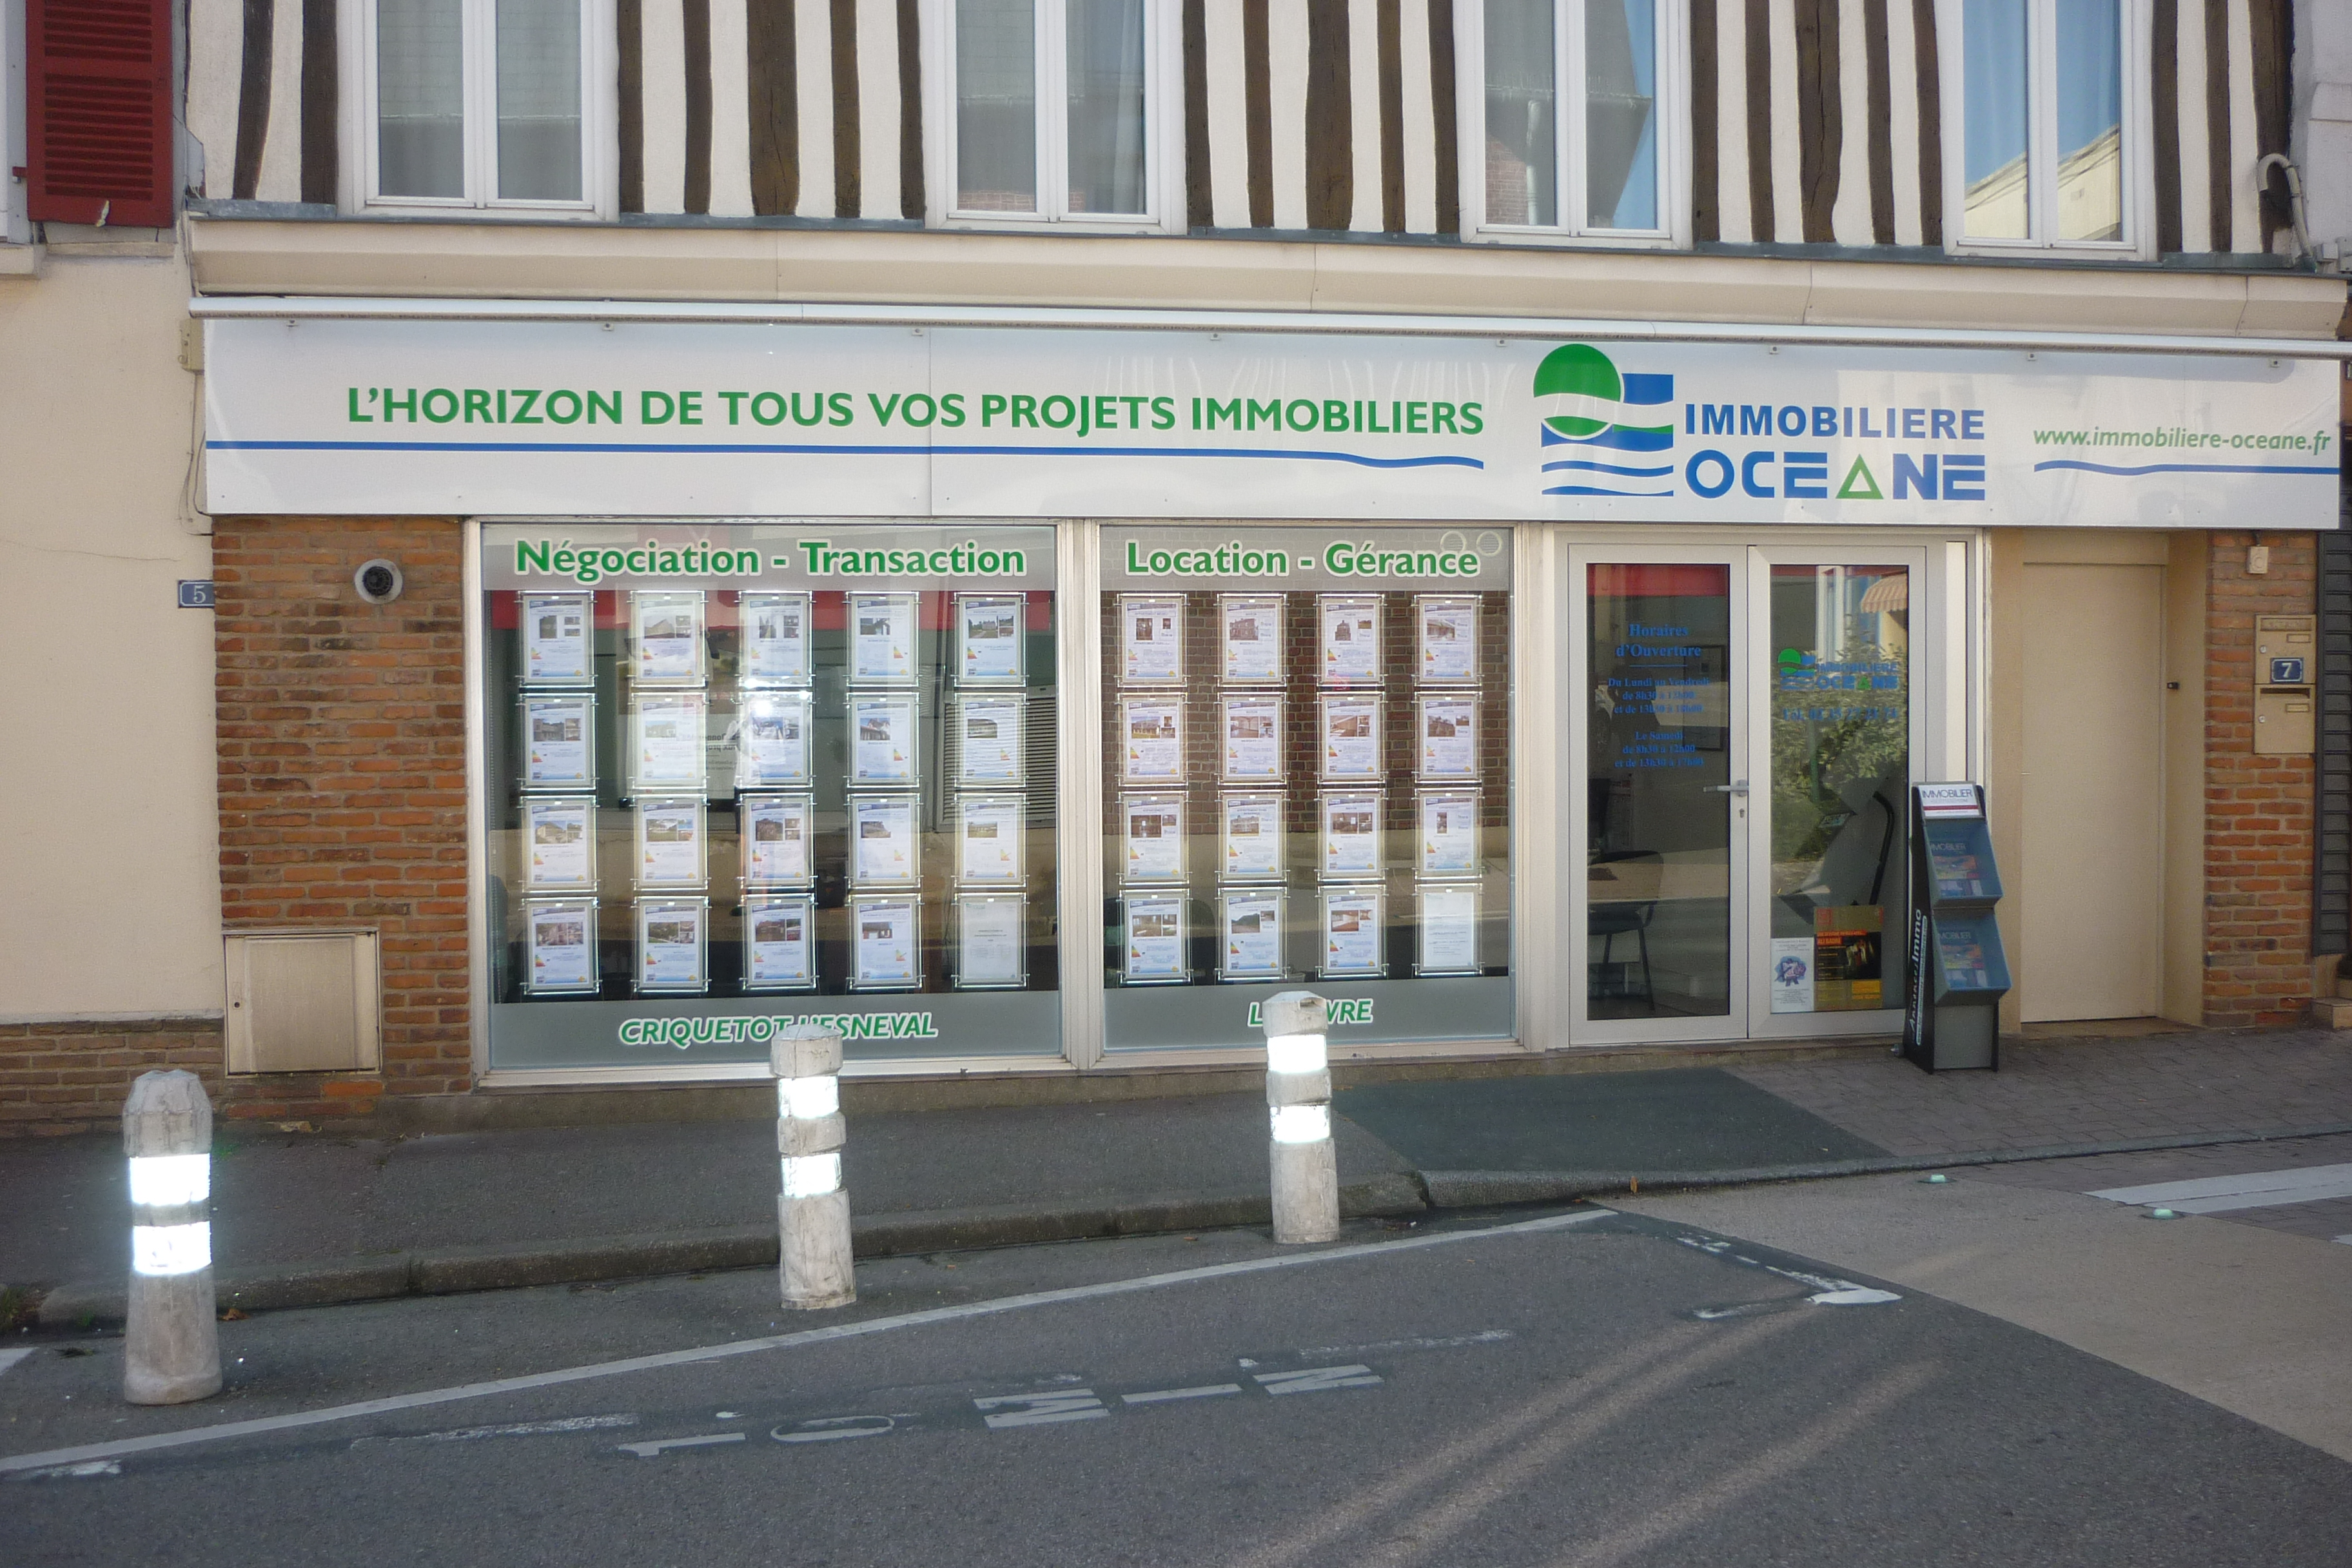 IMMOBILIERE OCEANE